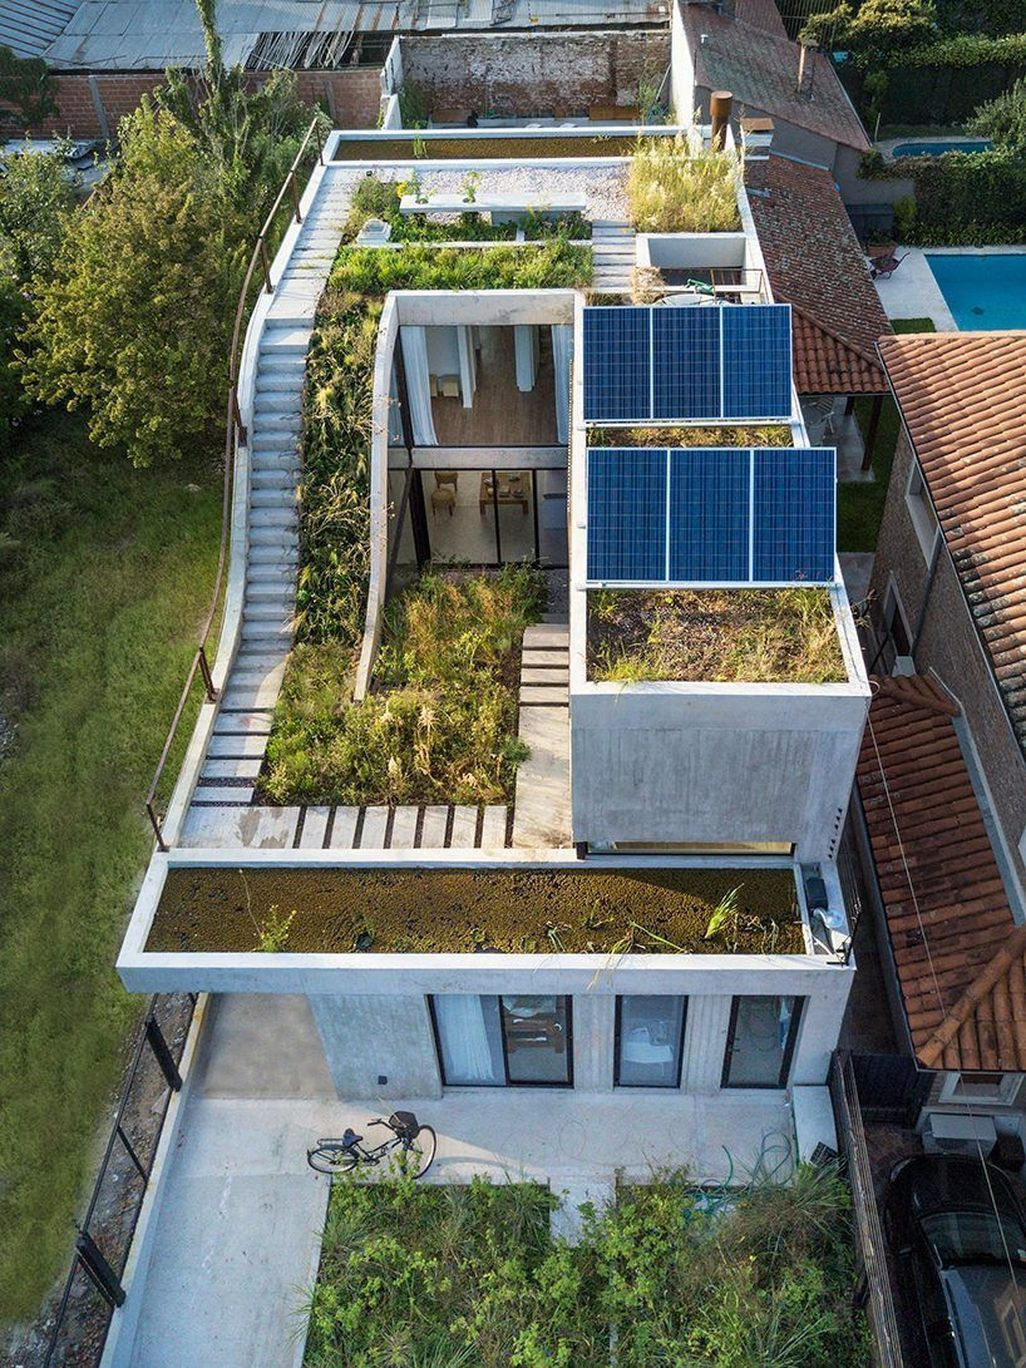 Roof top gardens london house with green design also see the world from above best rooftop bars screenshots rh in pinterest